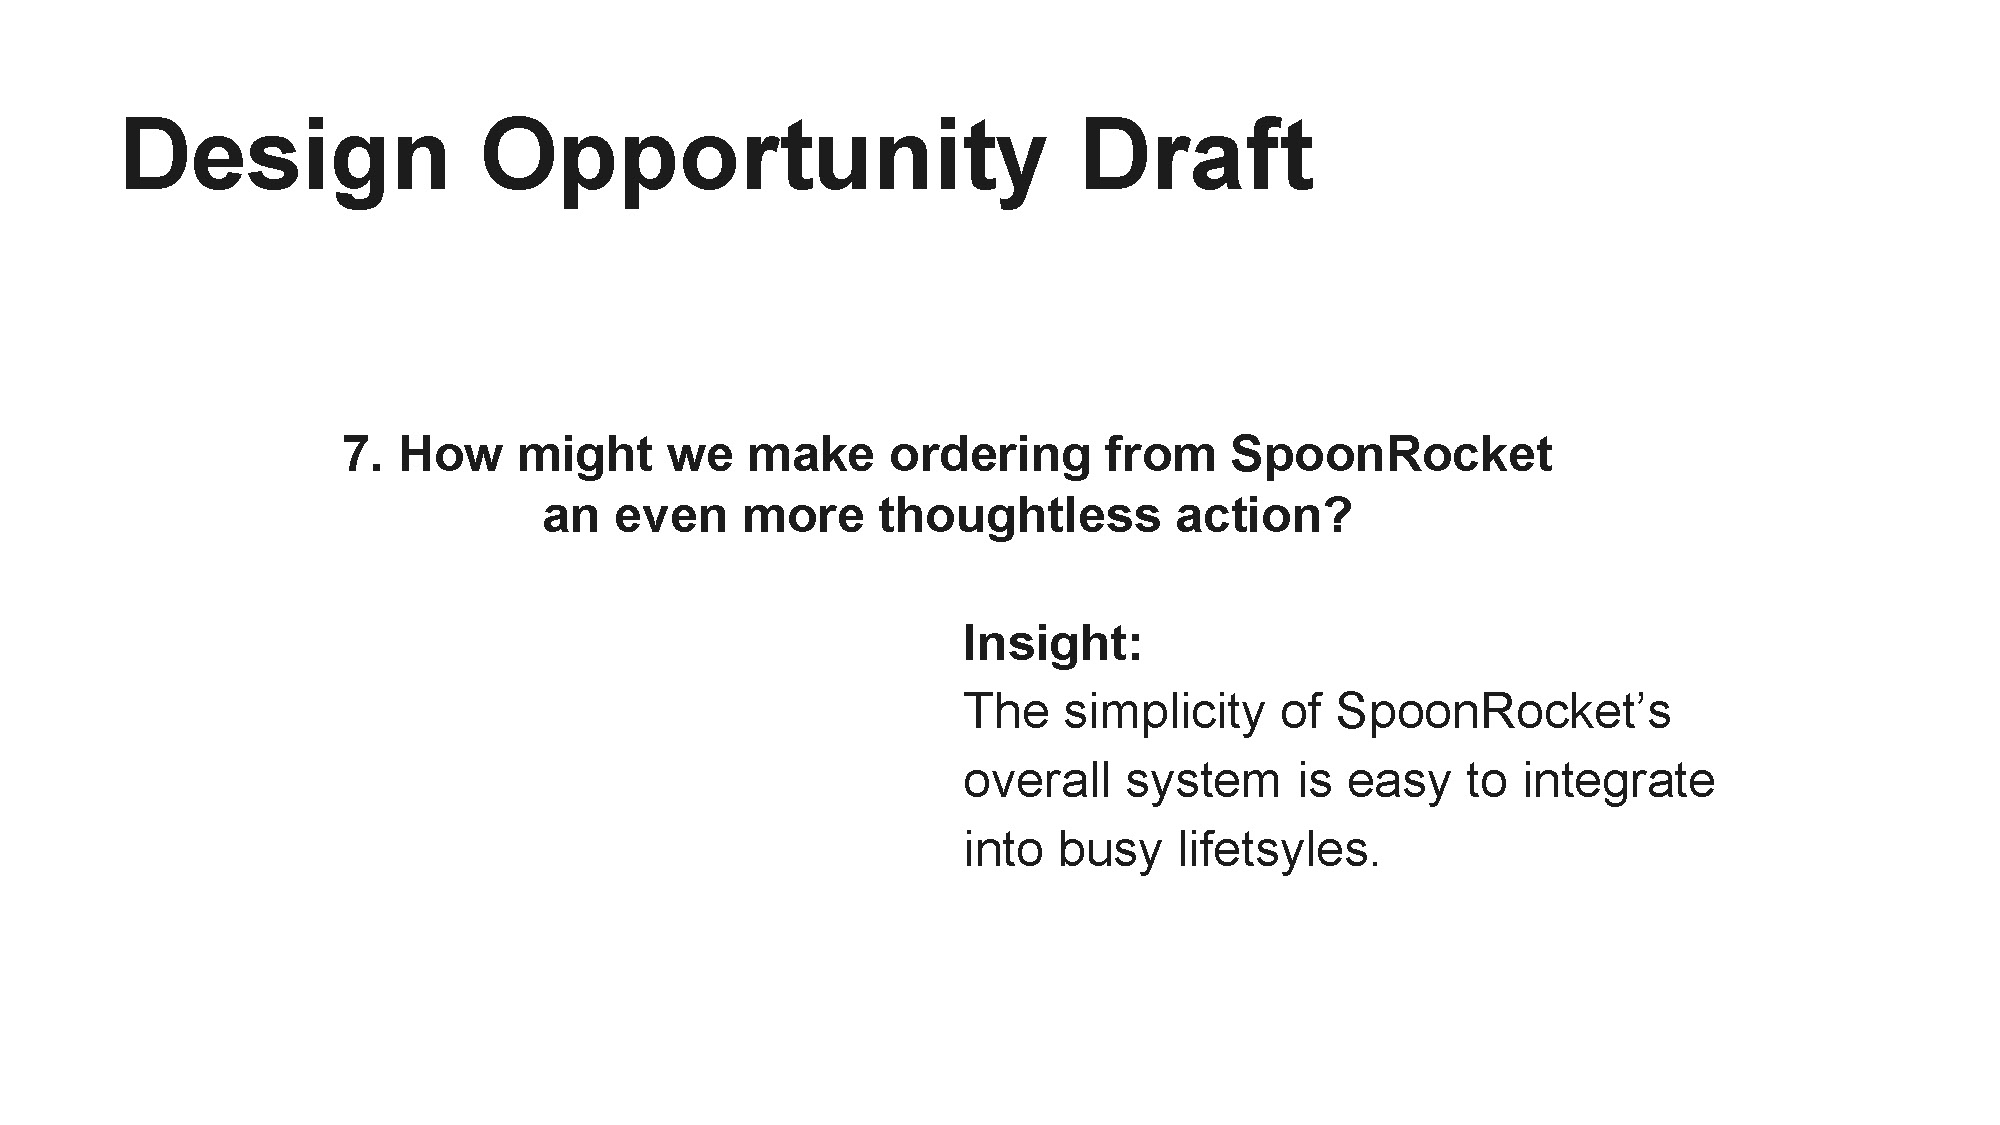 Project2_Process_Spoonrocket-deleted blank pages_Page_63.jpg